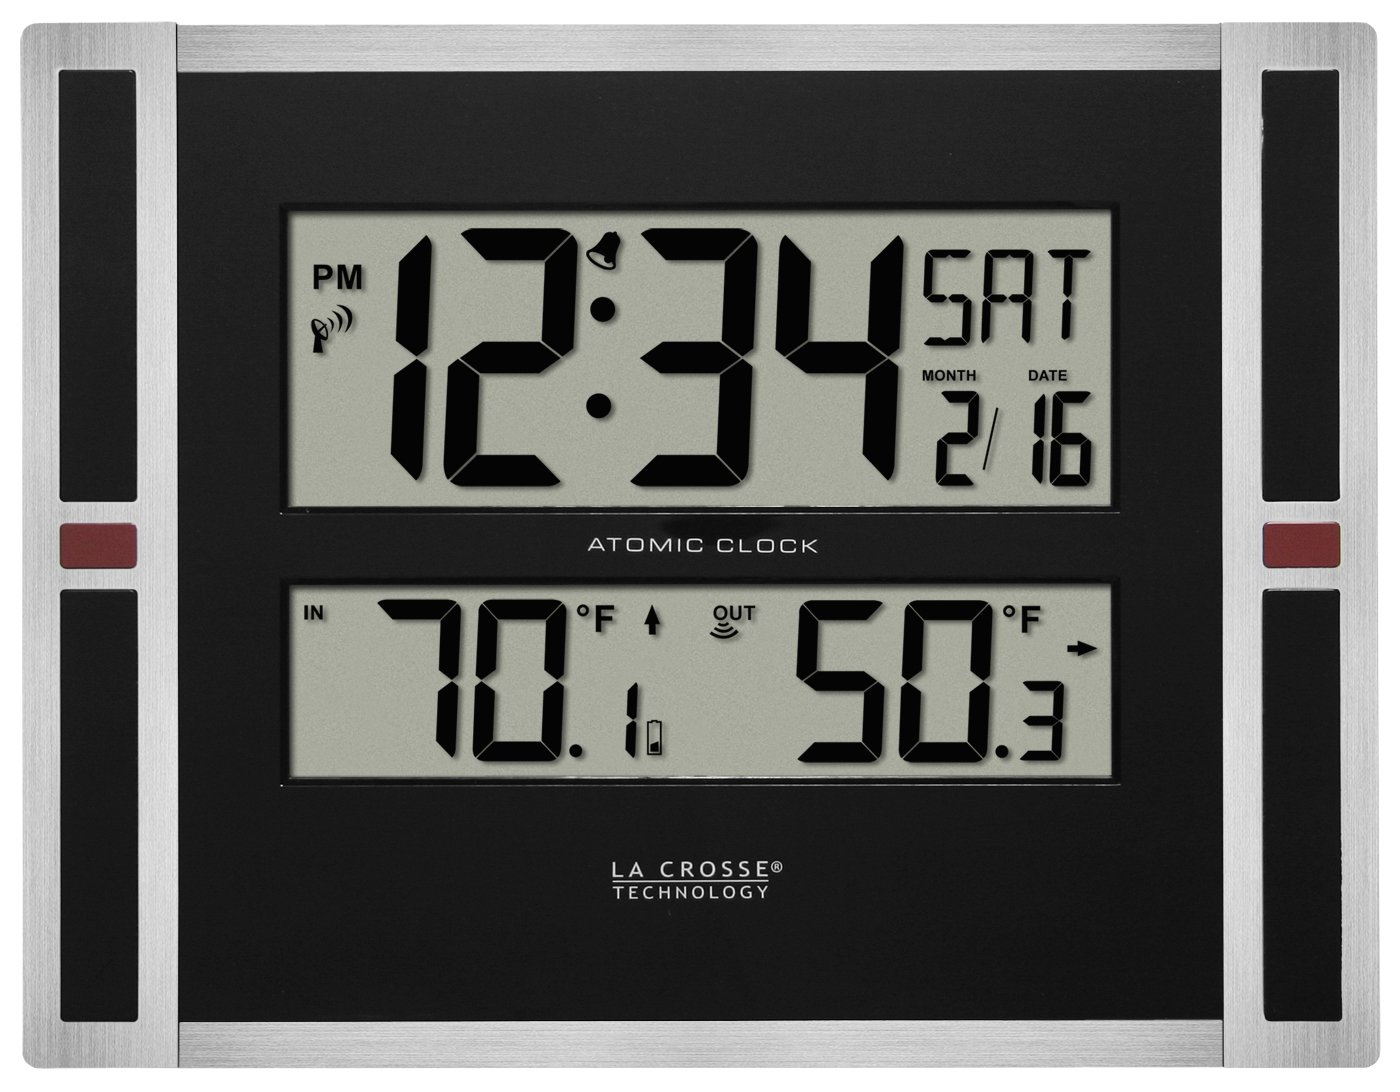 La Crosse Technology 513-149 11 inch Atomic Digital Wall Clock with Temperature, One Size, Black by La Crosse Technology